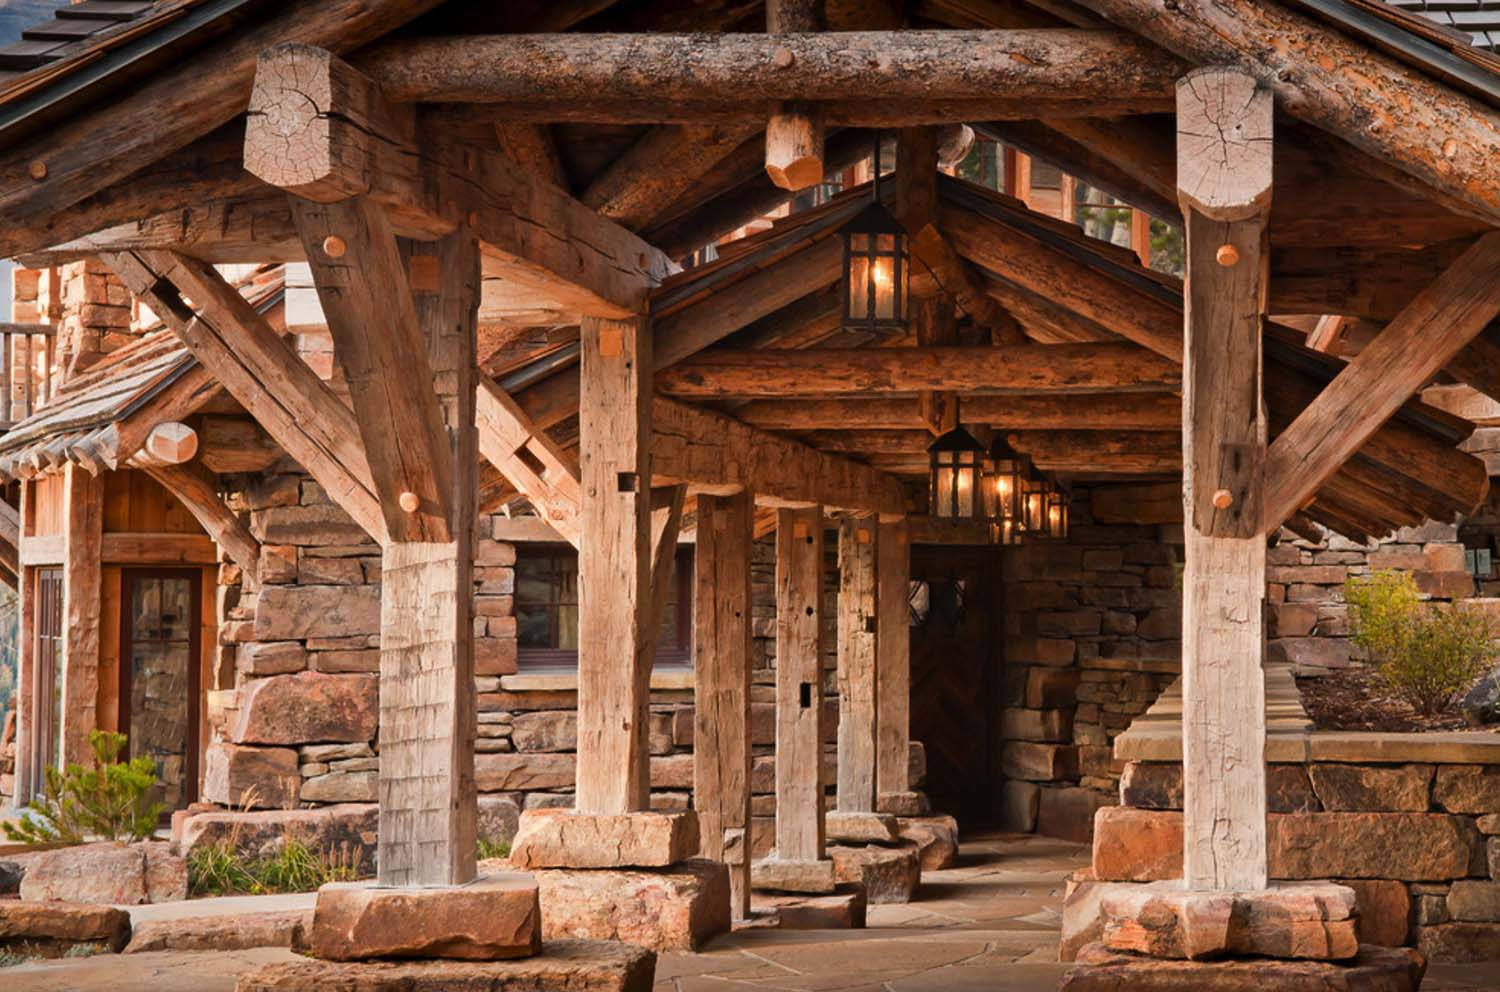 Wooden entrance, wood pillars, beam, design ideas